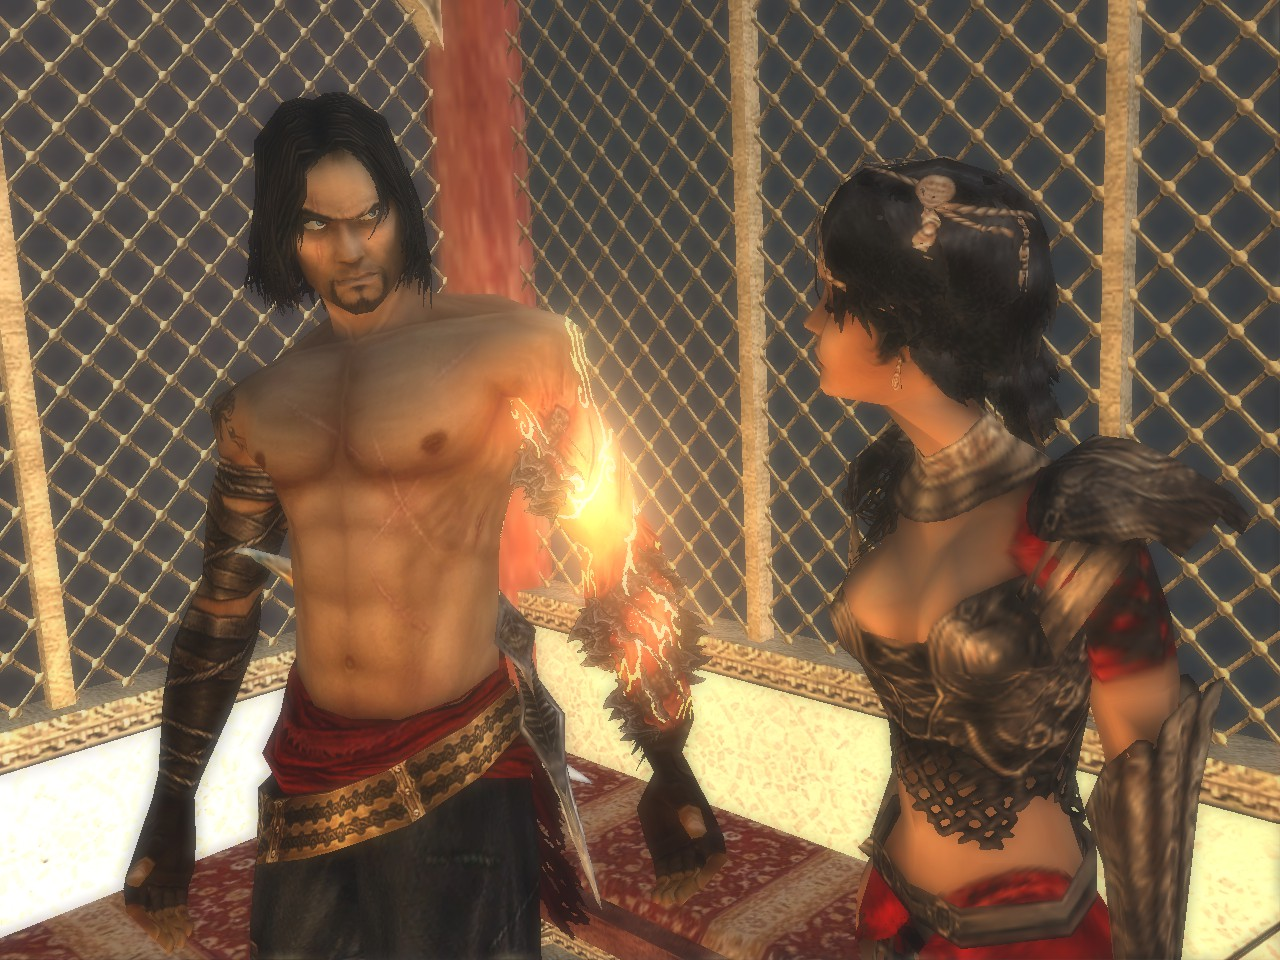 POP3 2014-06-01 20-44-41-29.jpg - Prince of Persia: The Two Thrones